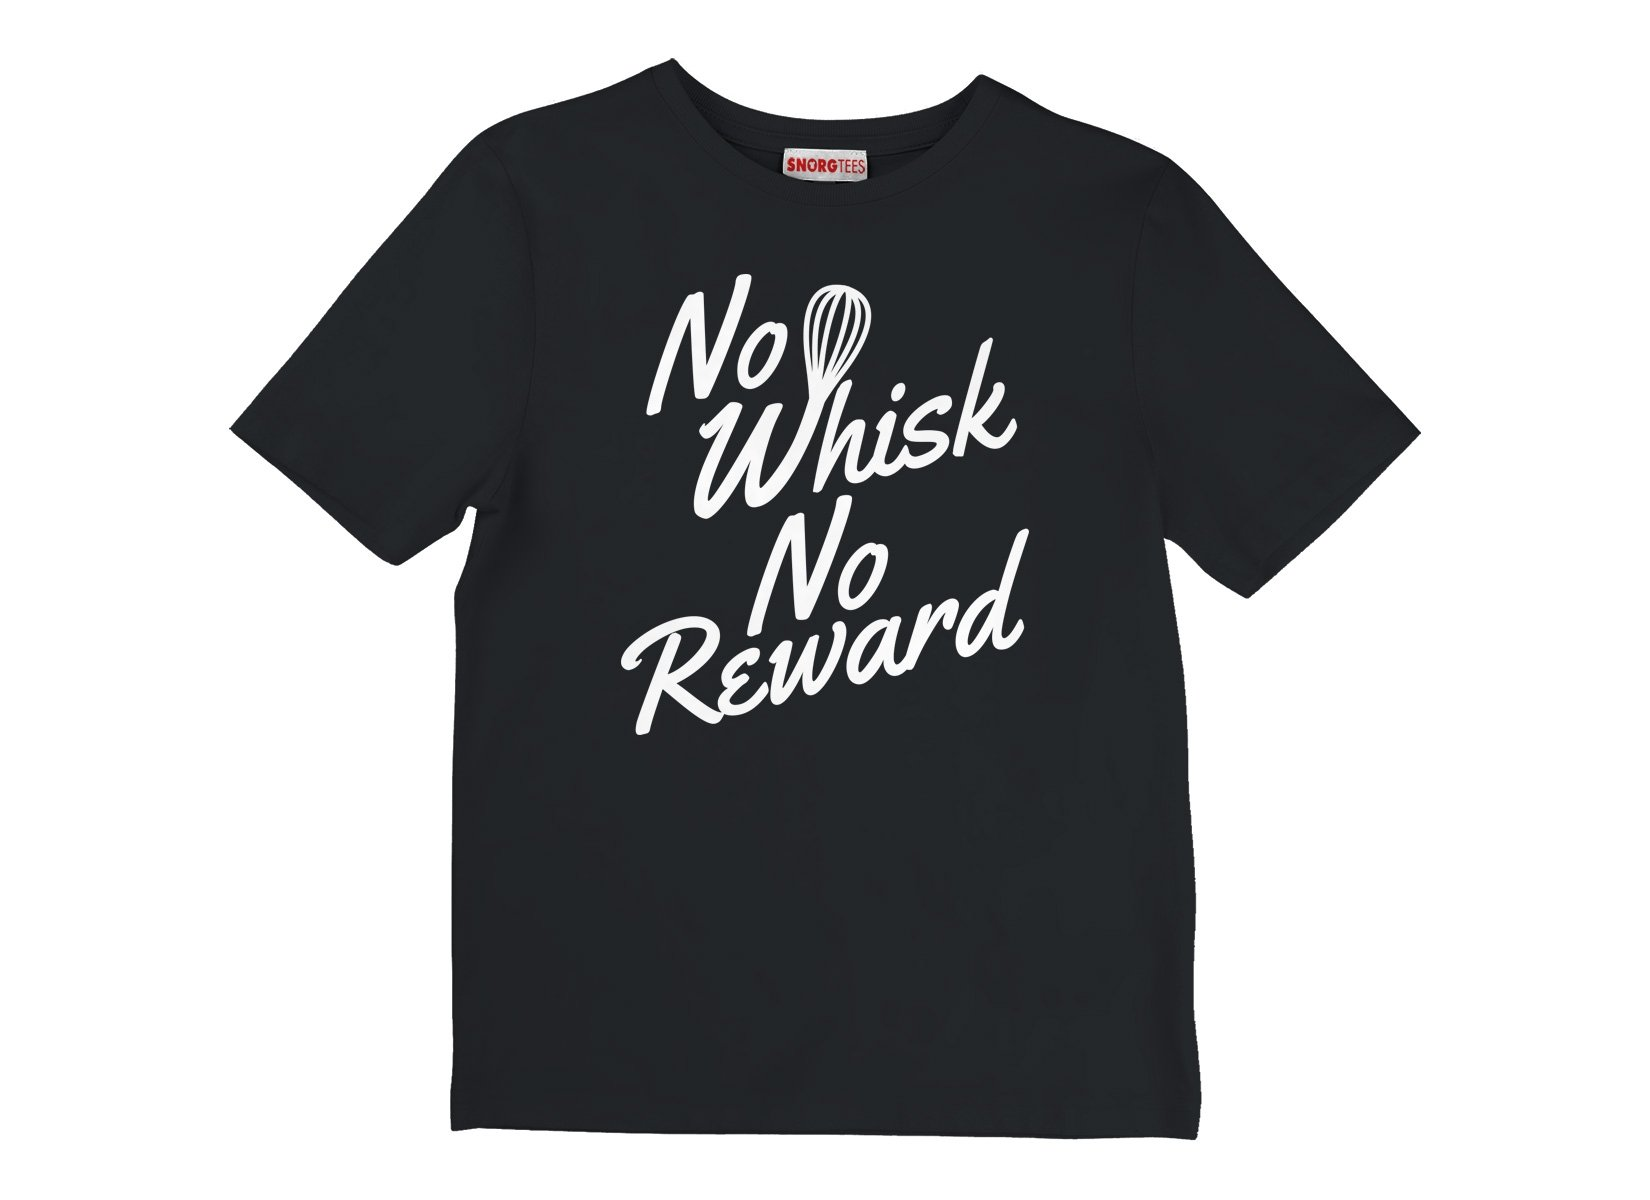 No Whisk No Reward on Kids T-Shirt